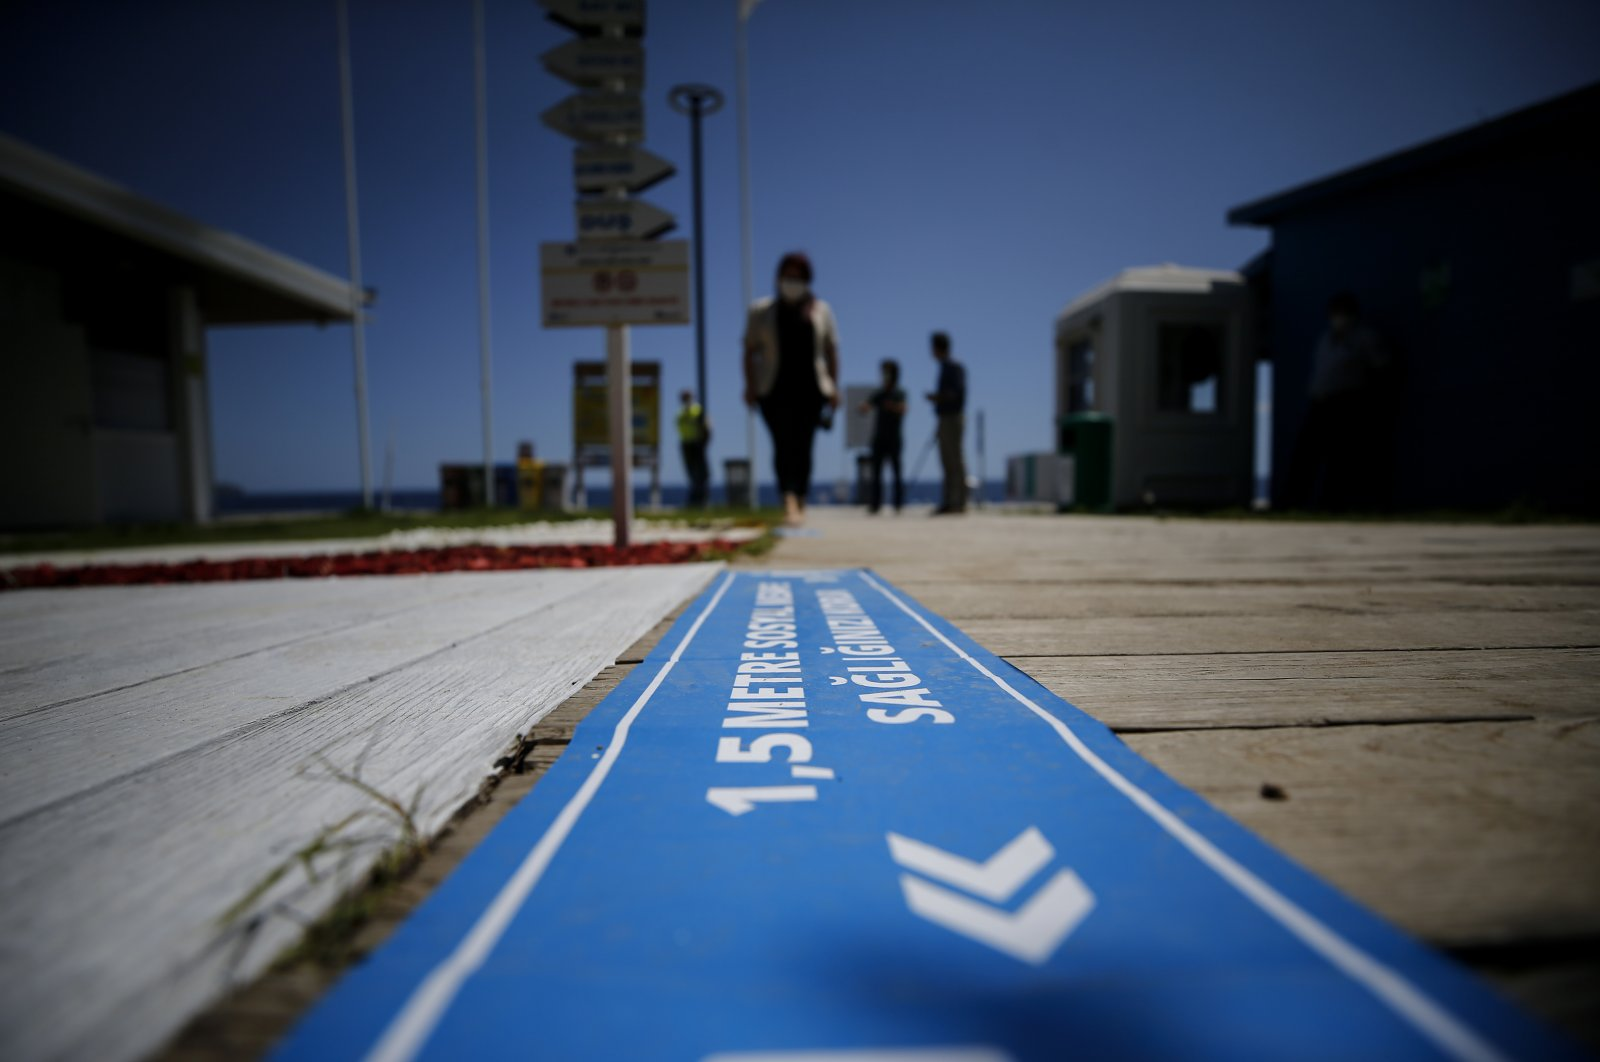 """""""One and a half meters of social distancing protects your health,"""" reads a sign in Turkey's touristic Antalya province where a number of measures against the coronavirus pandemic were taken with social distancing to be observed even while swimming, May 29, 2020 (AA Photo)"""